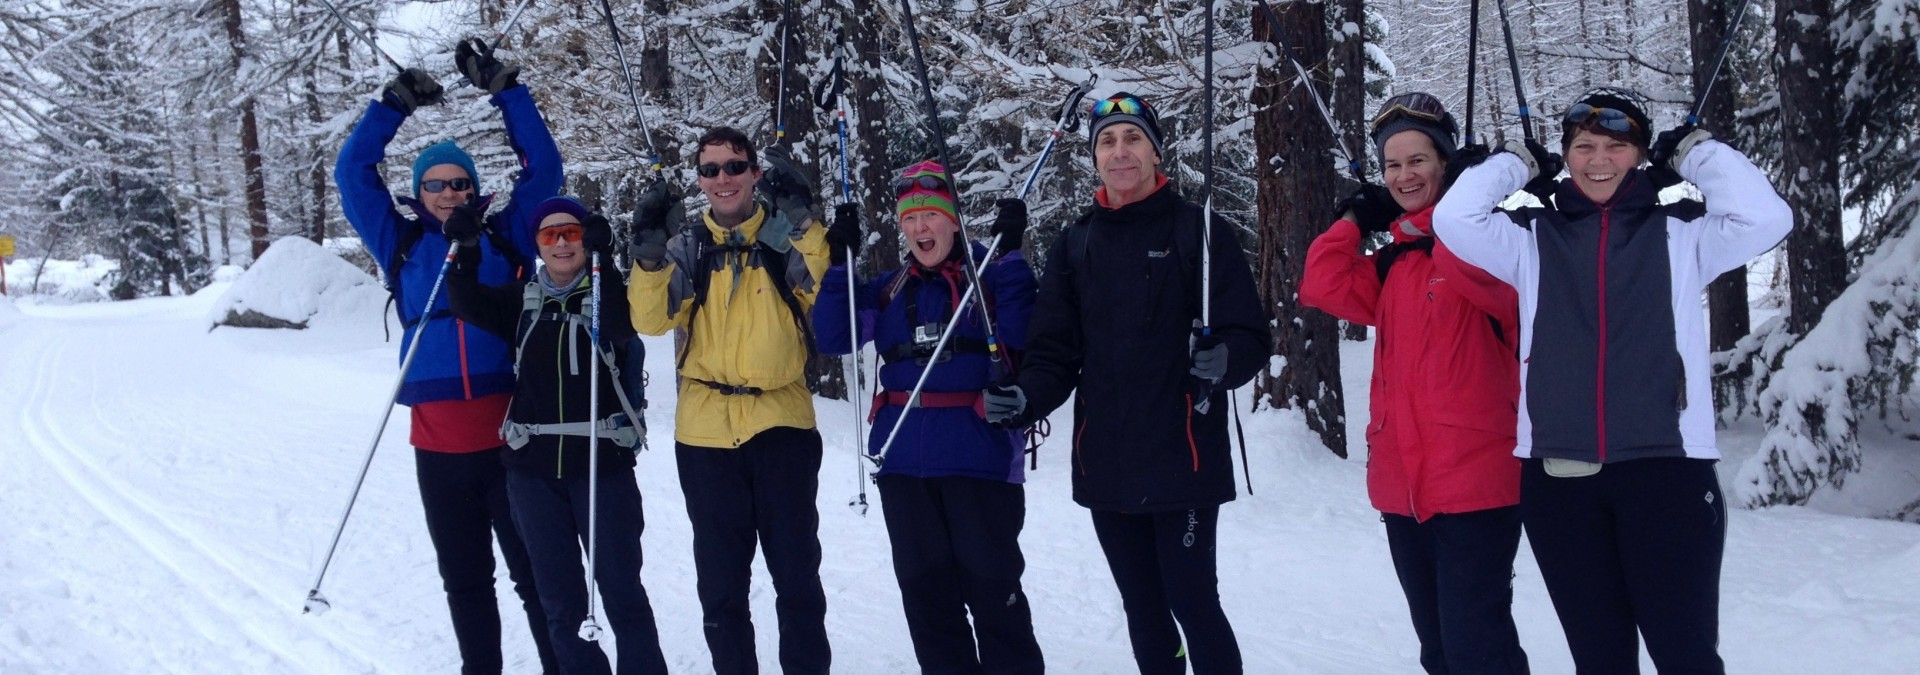 Italian Ski Break for Improvers